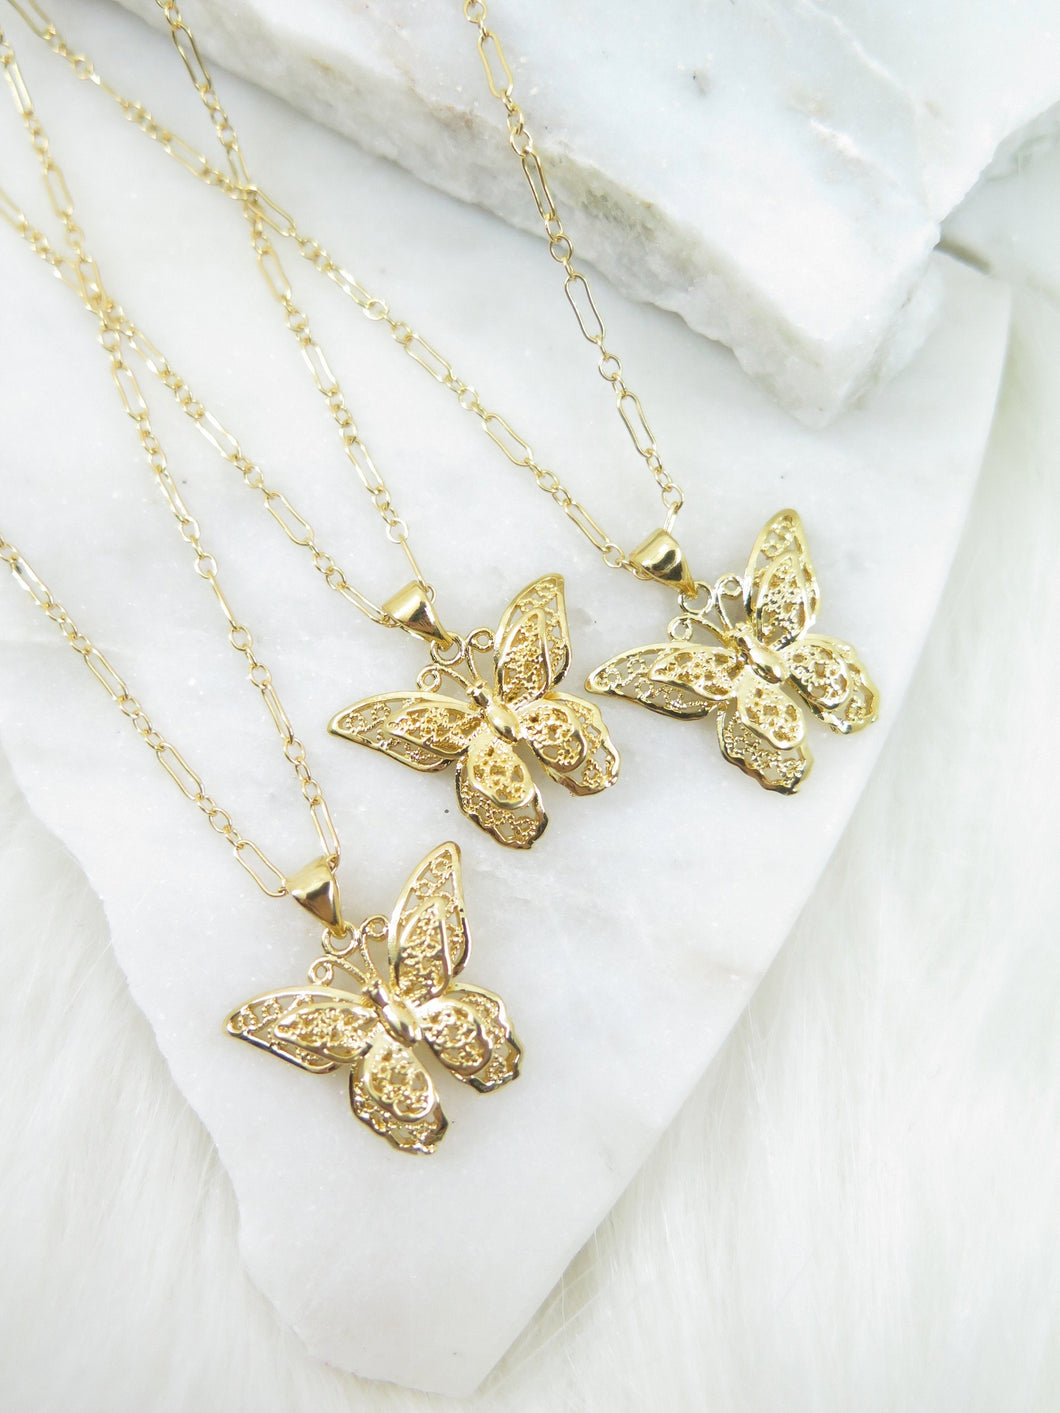 Gold Monarch Butterfly Necklace